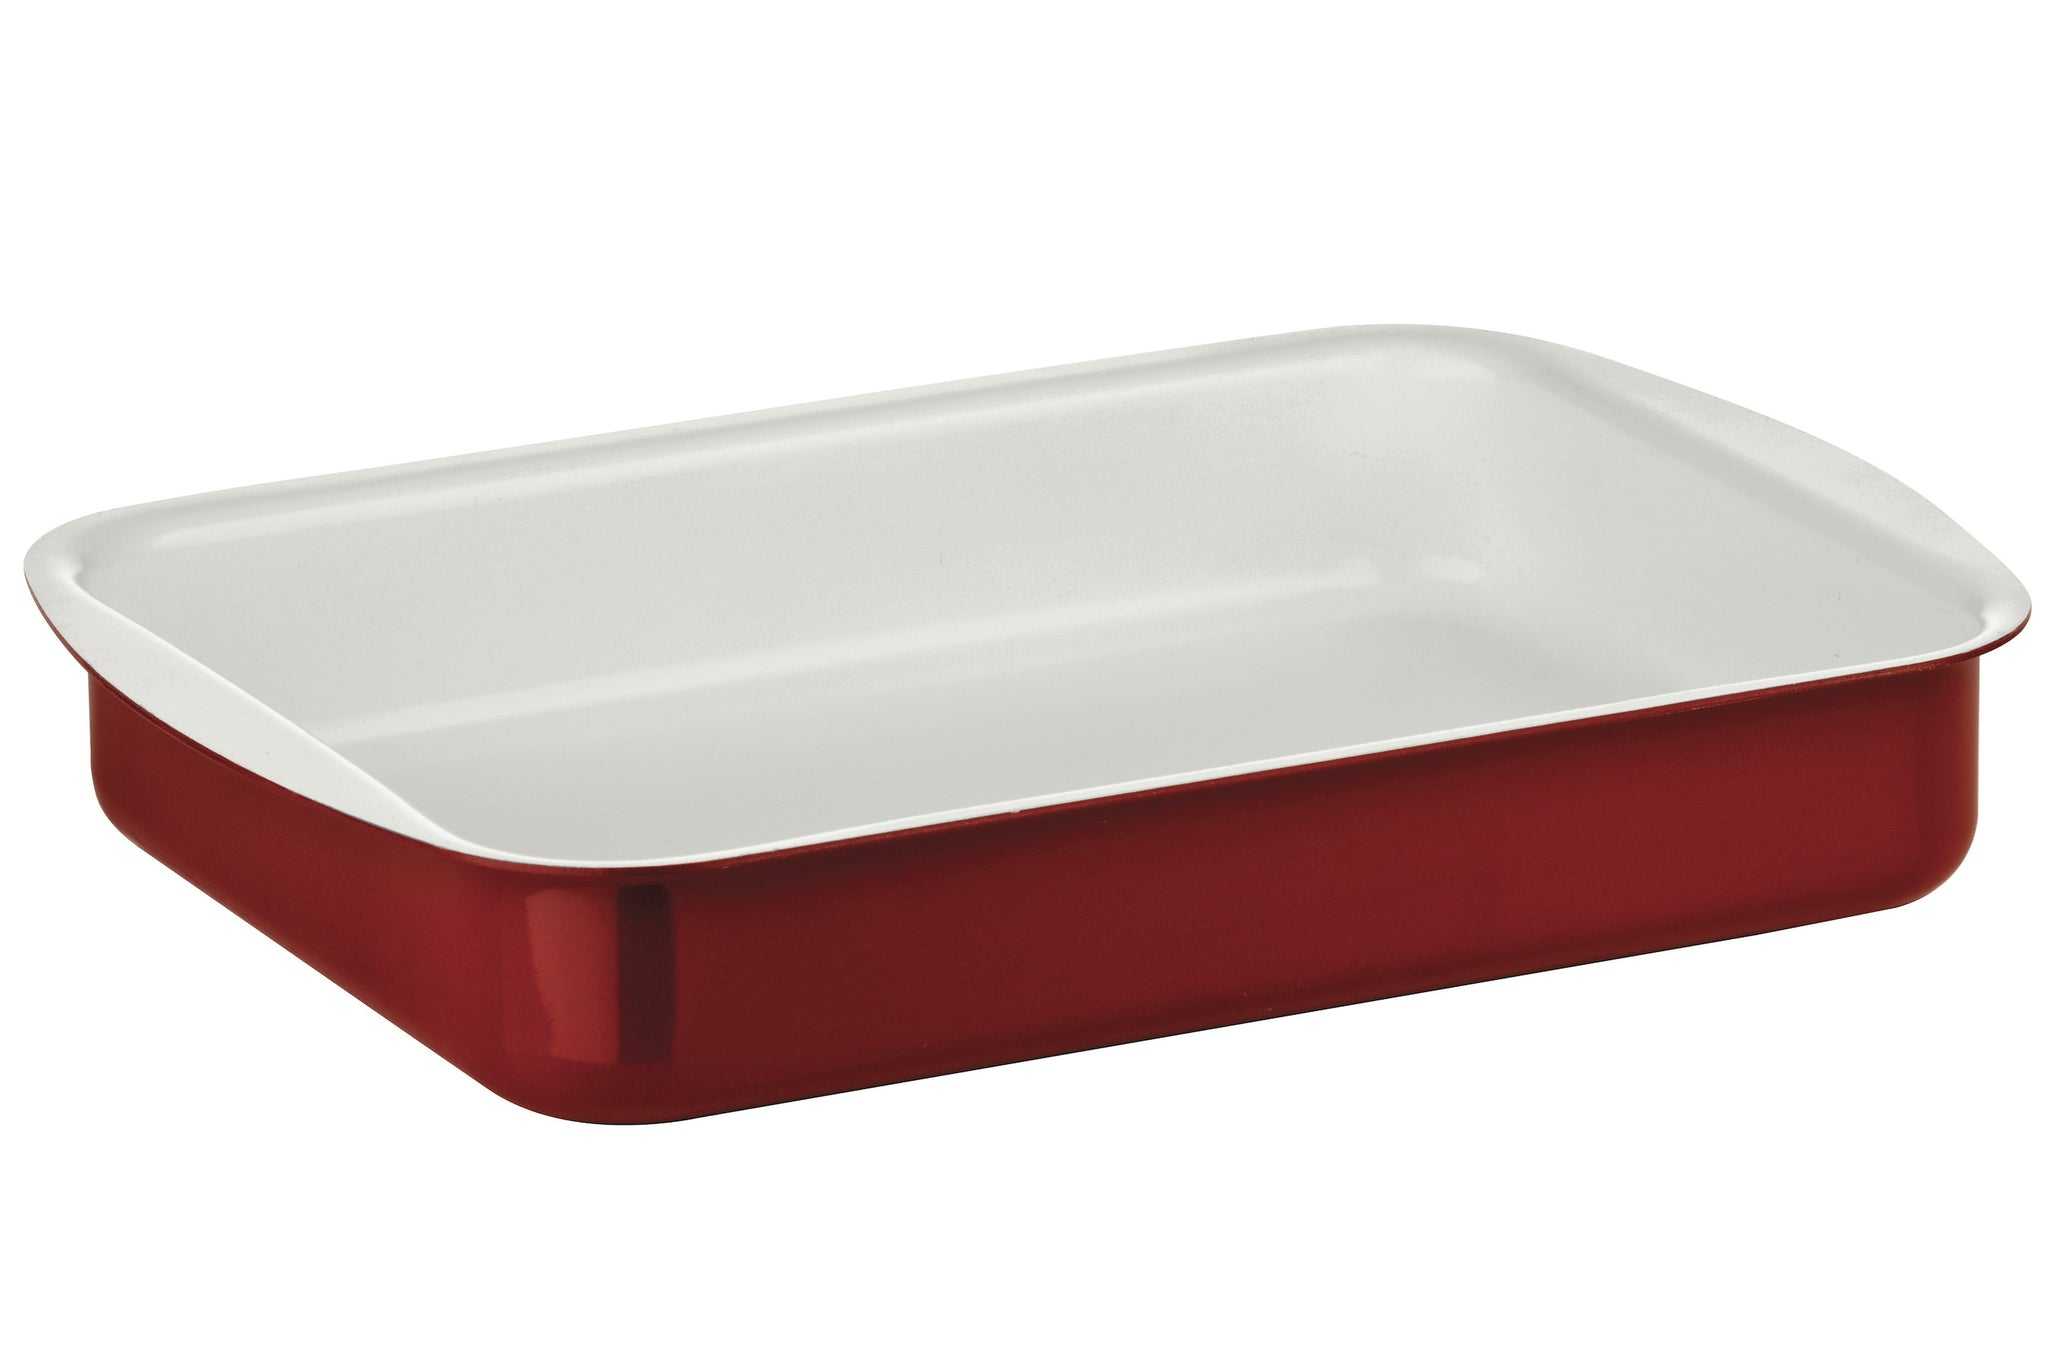 30cm Eco-friendly Eco-Cook Non-Stick Ceramic Rectangular Baking Pan